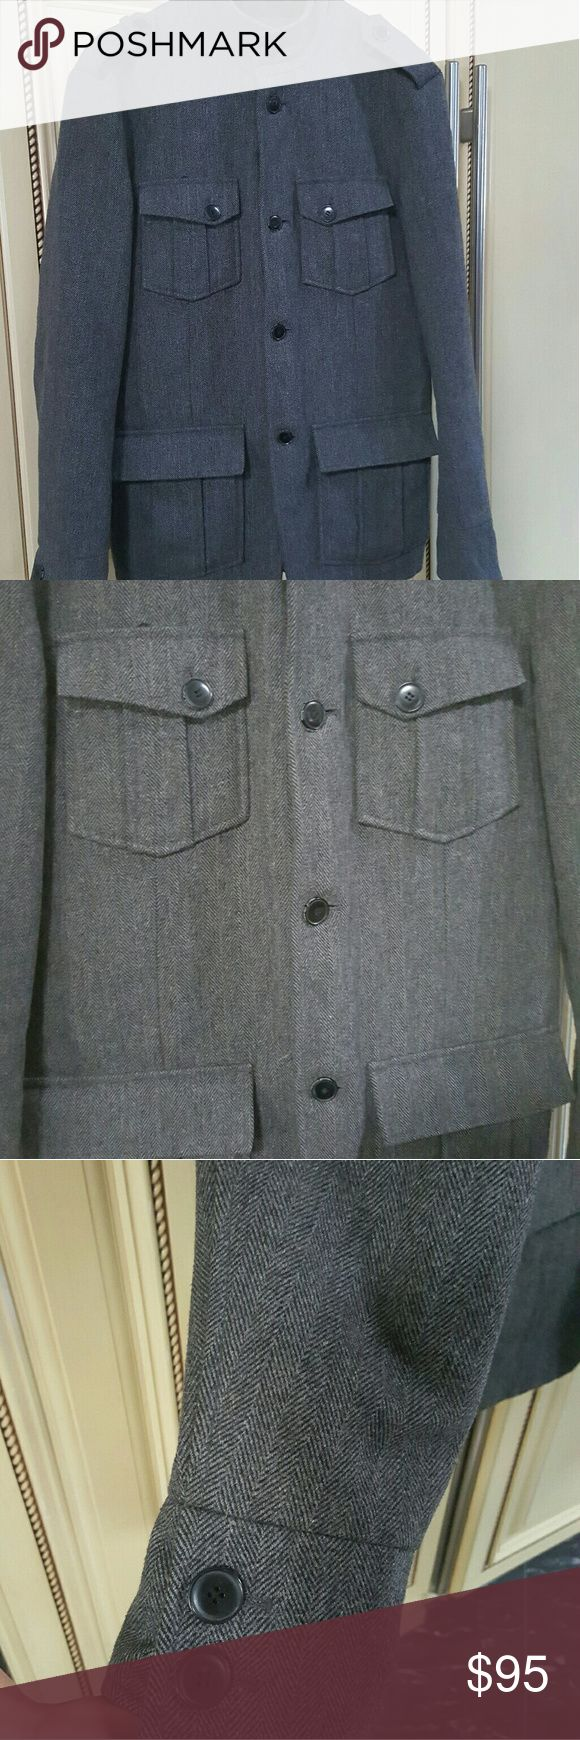 Mens- Jack & Jones premium Peacoat Jack and Jones premium grey Peacoat in perfect condition like new no flaws Jack and Jones Jackets & Coats Pea Coats